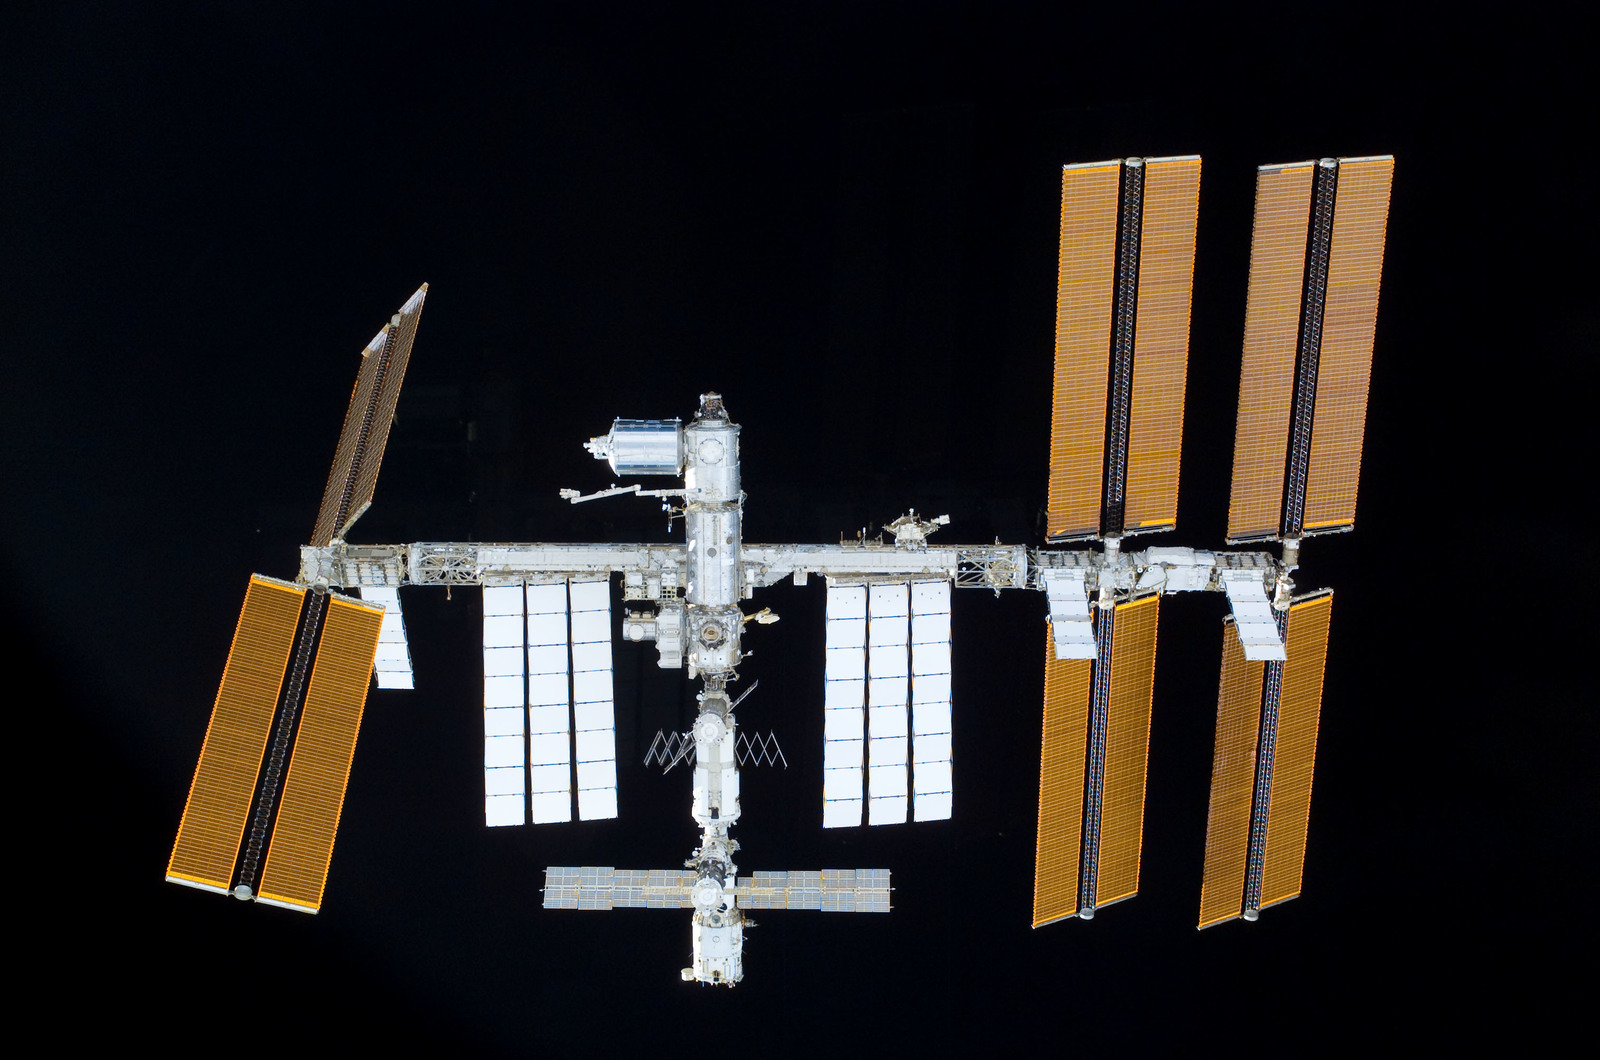 S122E011029 - STS-122 - View of ISS after STS-122 Undocking